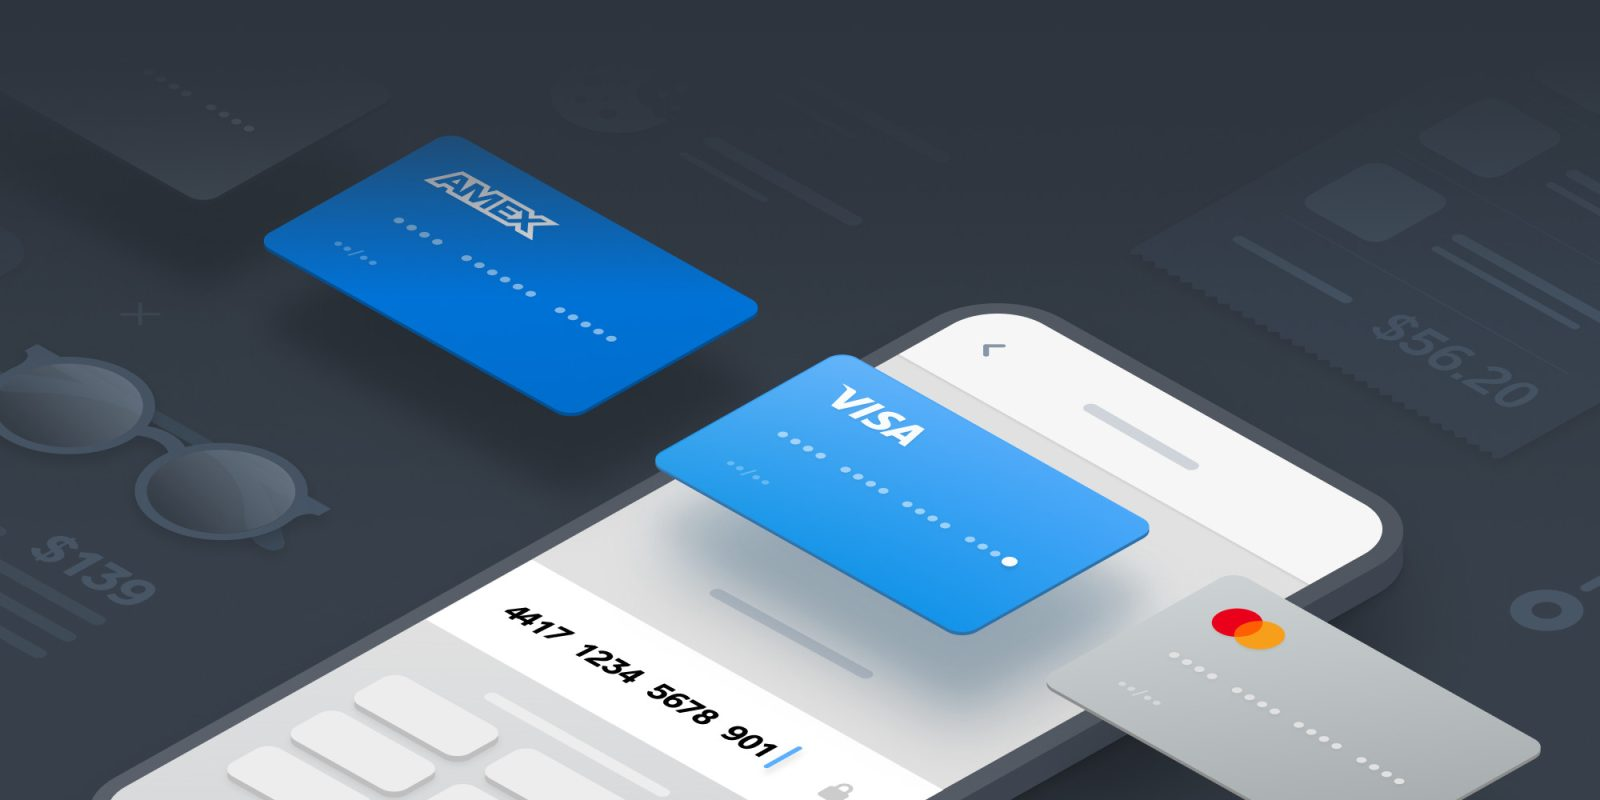 Square launches In-App Payments SDK for Android, iOS - 9to5Google